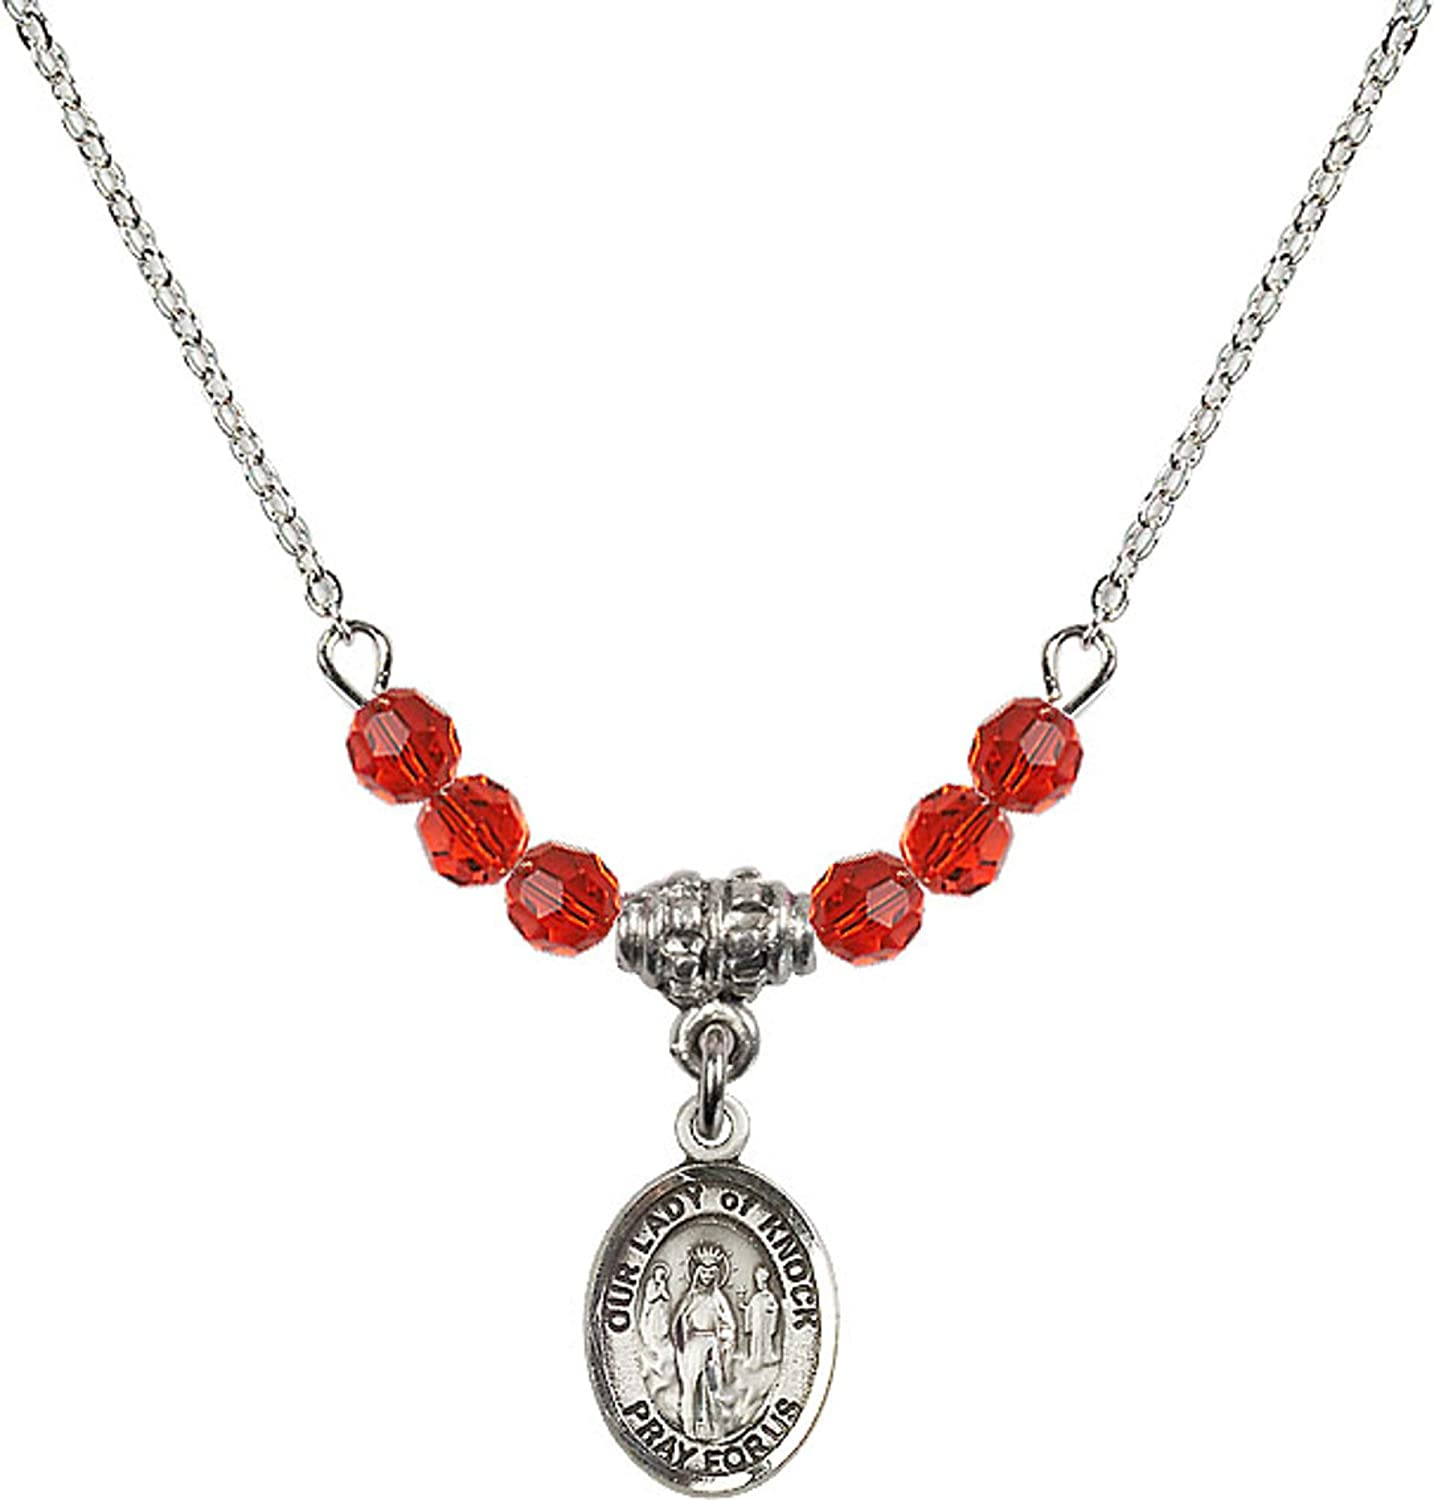 Bonyak Jewelry 18 Inch Rhodium Plated Necklace w// 4mm Red July Birth Month Stone Beads and Our Lady of Knock Charm